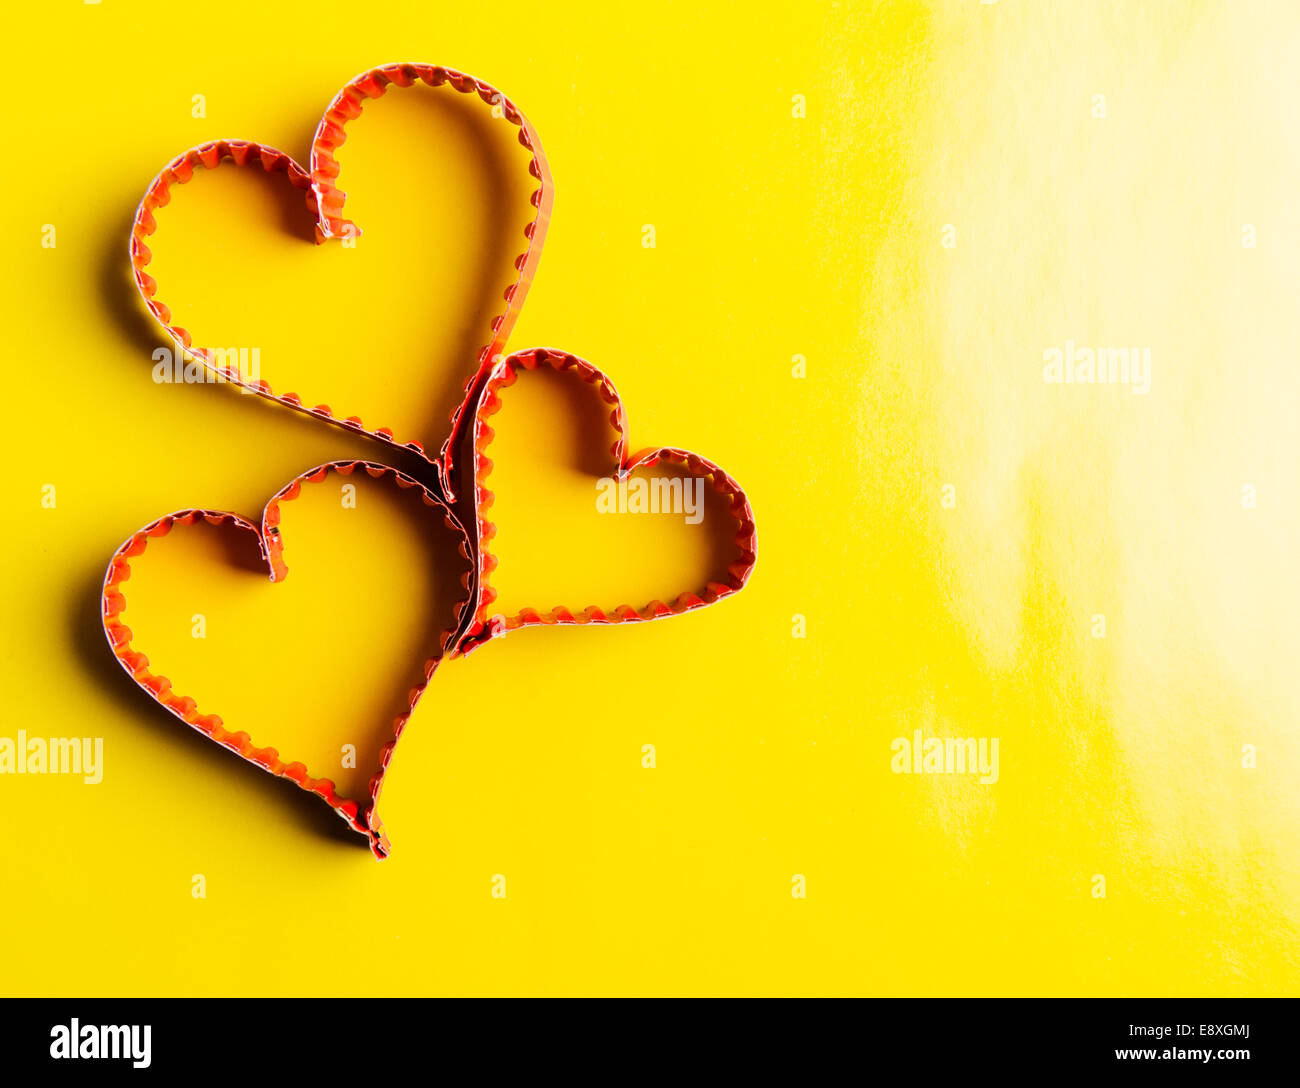 Paper Heart Shape Symbol For Valentines Day With Copy Space For Text